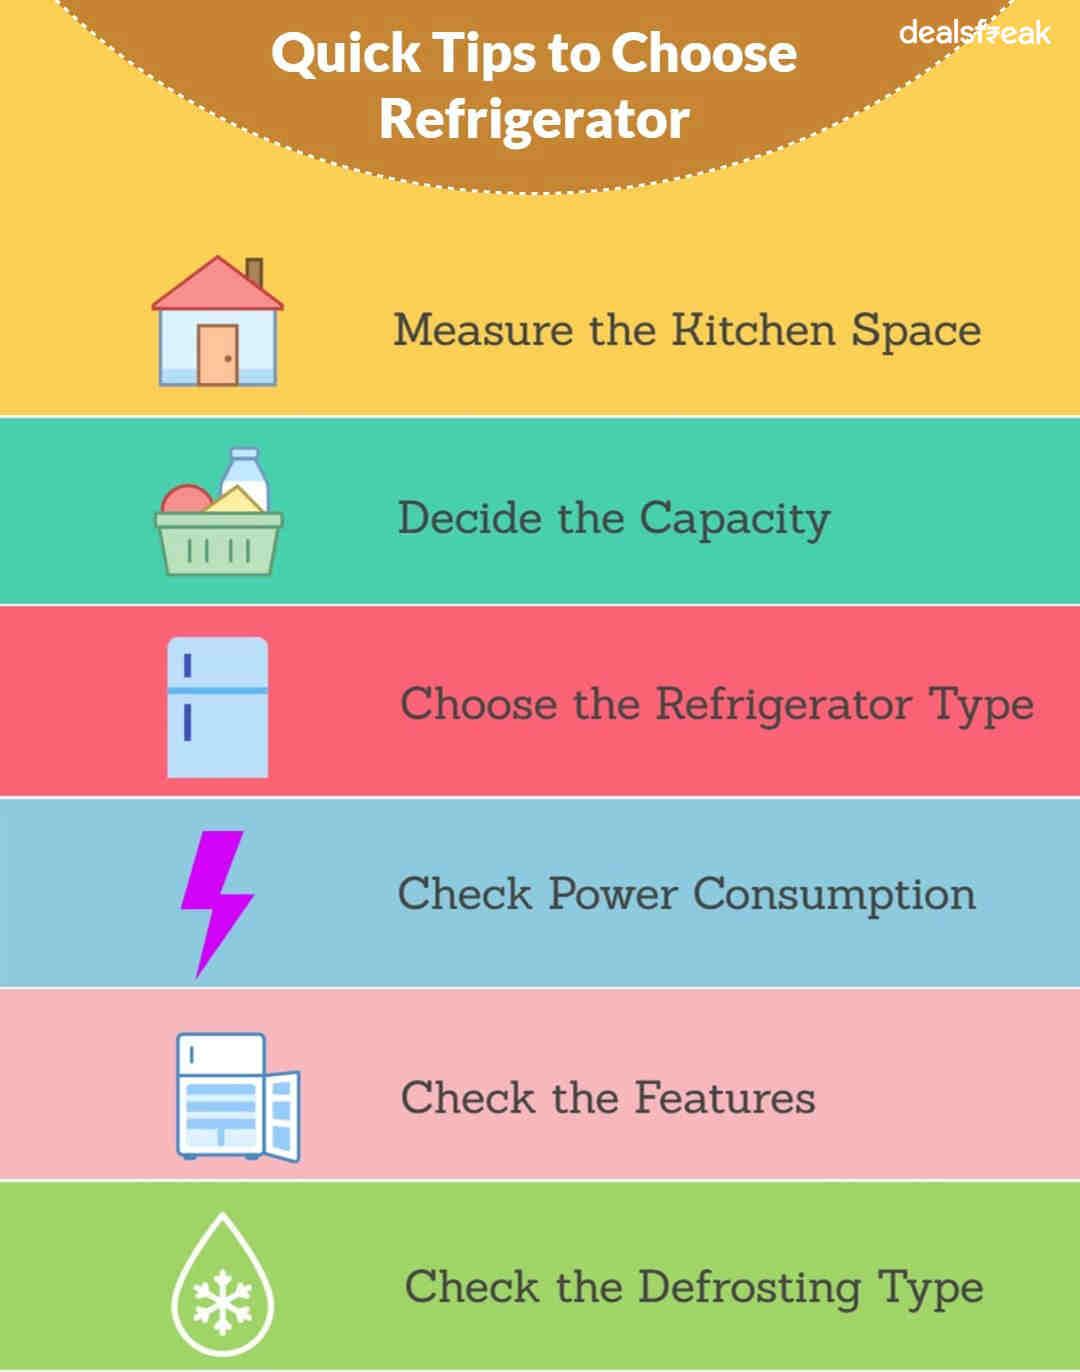 easy tips to choose the best refrigerator